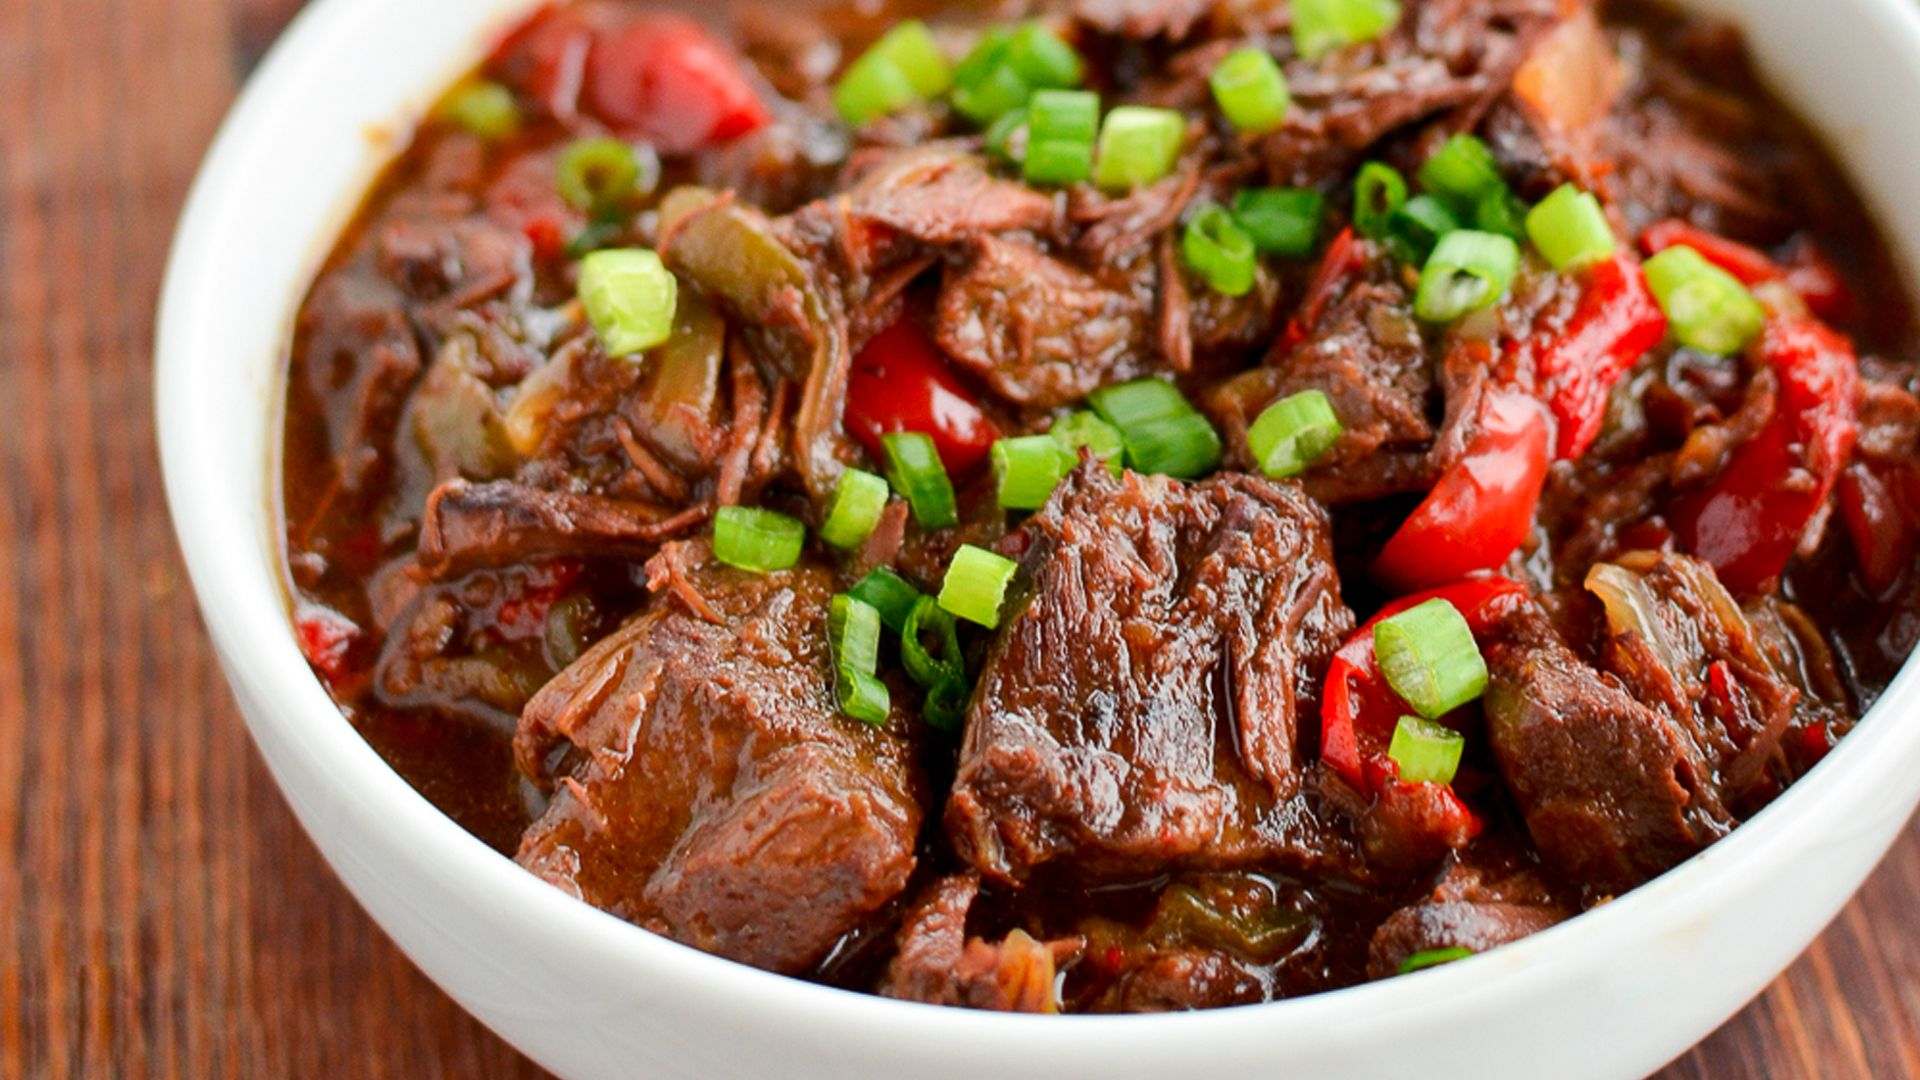 17 Slow Cooker Beef Recipes That Anyone Can Make 2019 Stylecaster Spicy Asian Beef Slow Cooker Recipes Beef Slow Cooked Meals